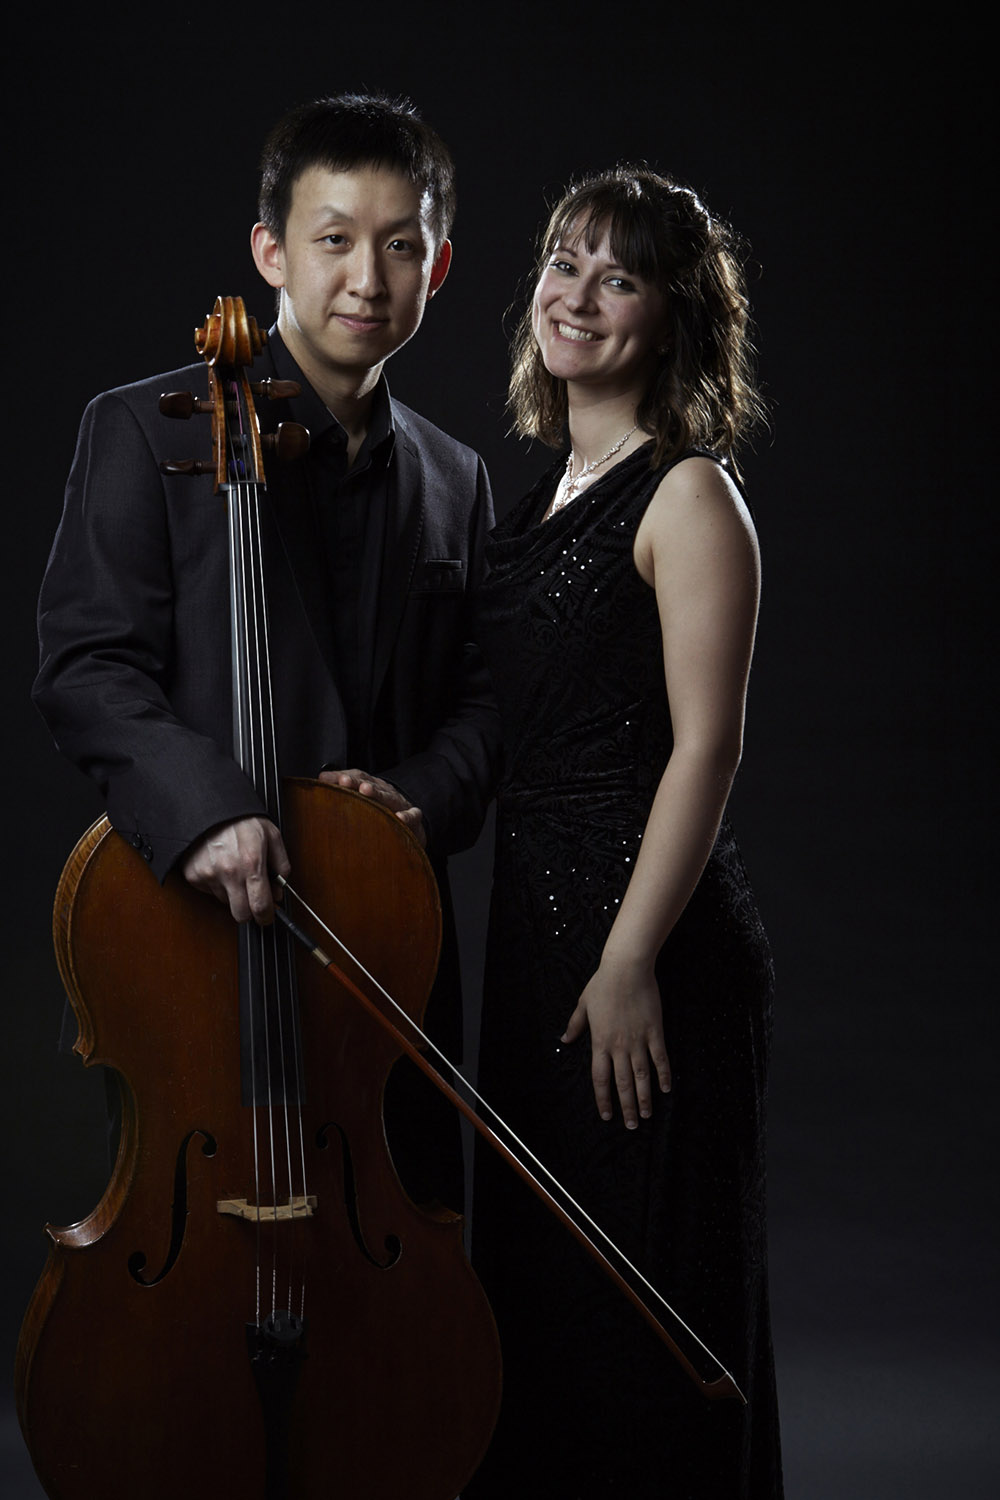 2014 Australian Cello Awards Y-Squared Photoshoot